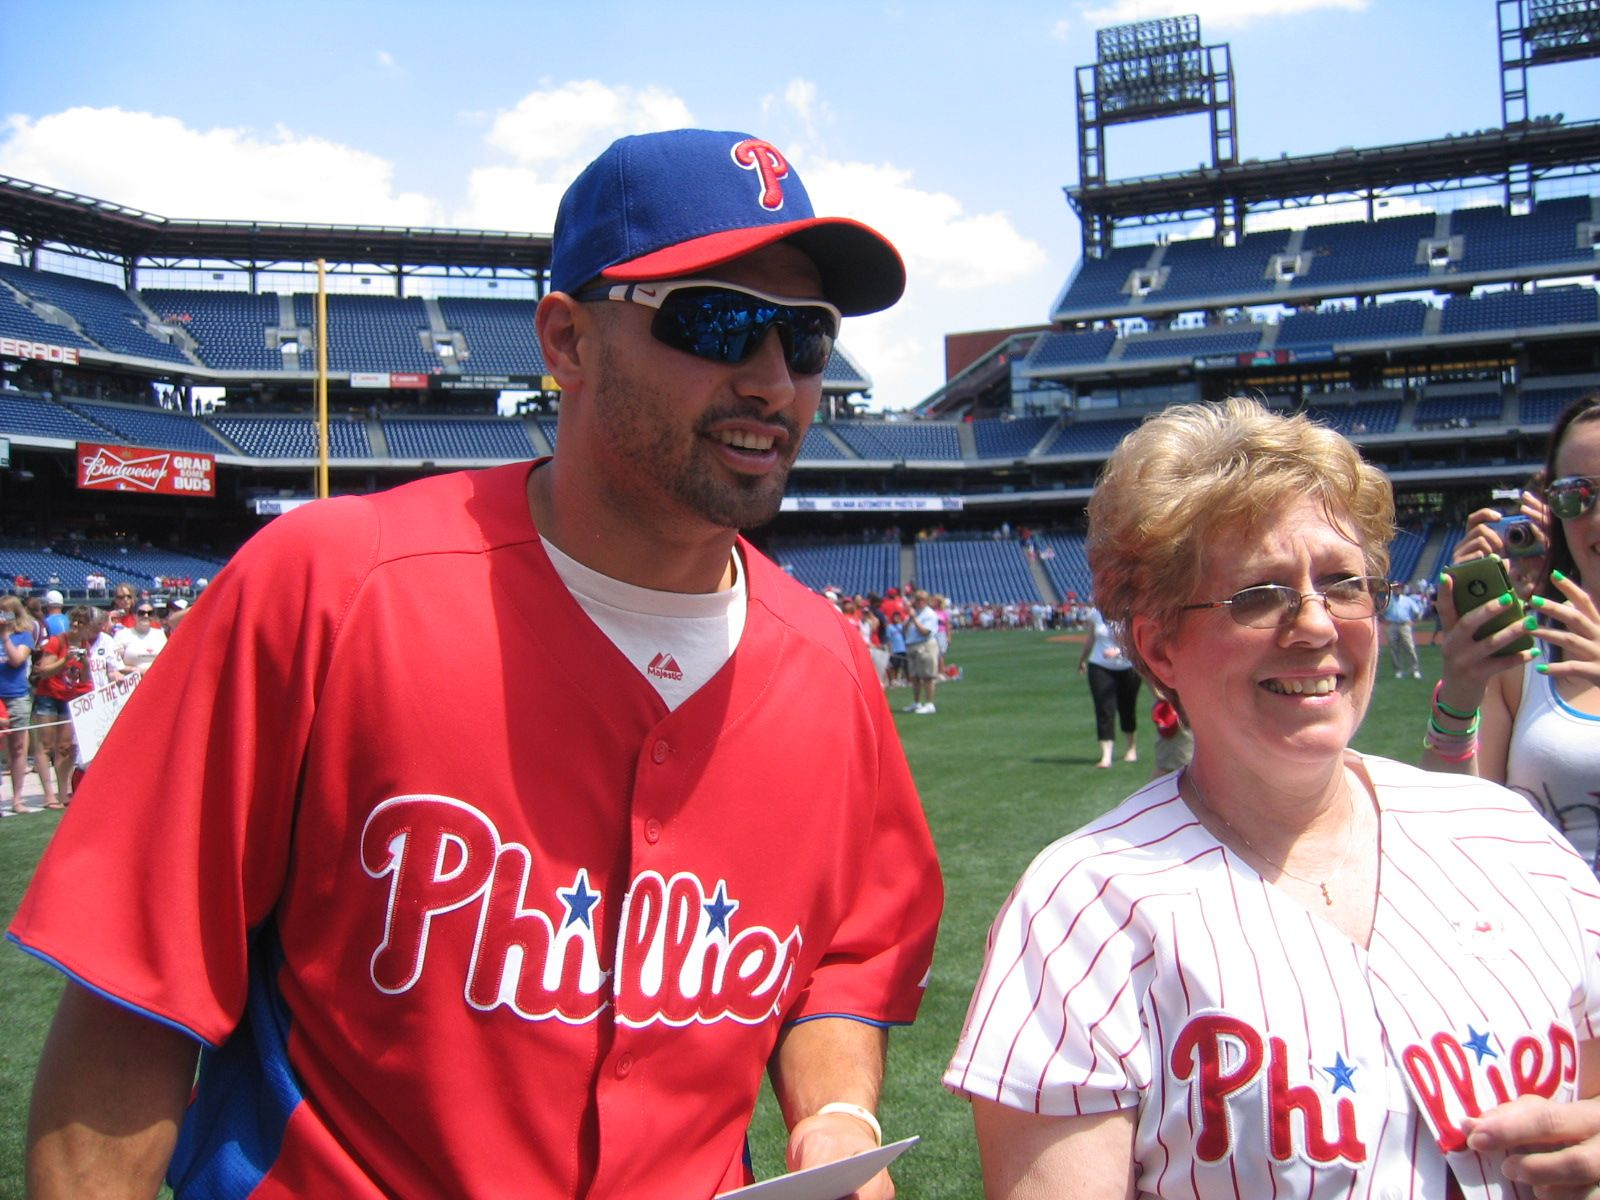 Shane Victorino before he was traded to the Dodgers